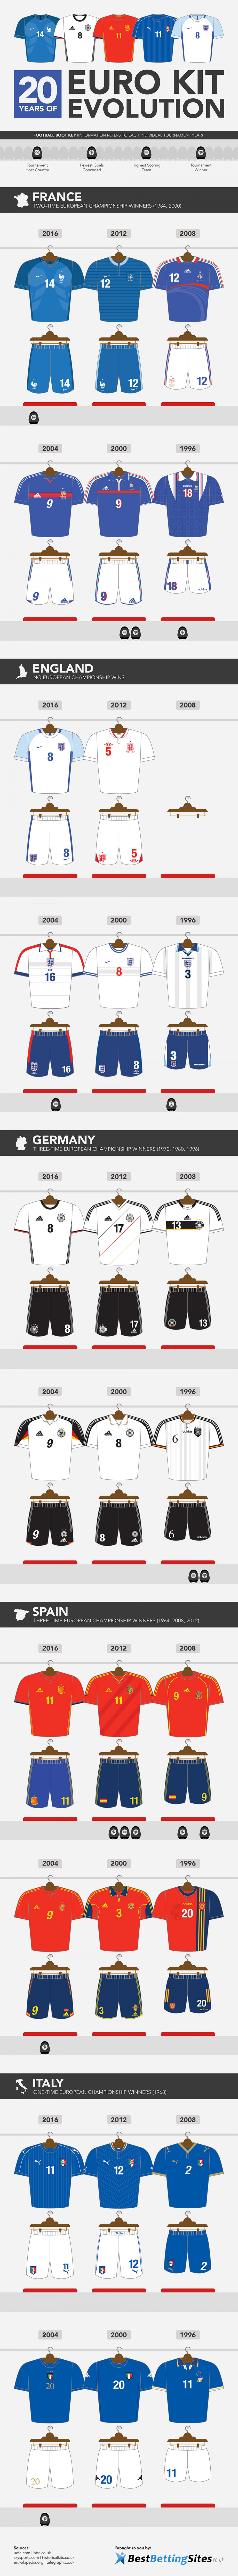 20 Years of Euro Kit Evolution Infographic